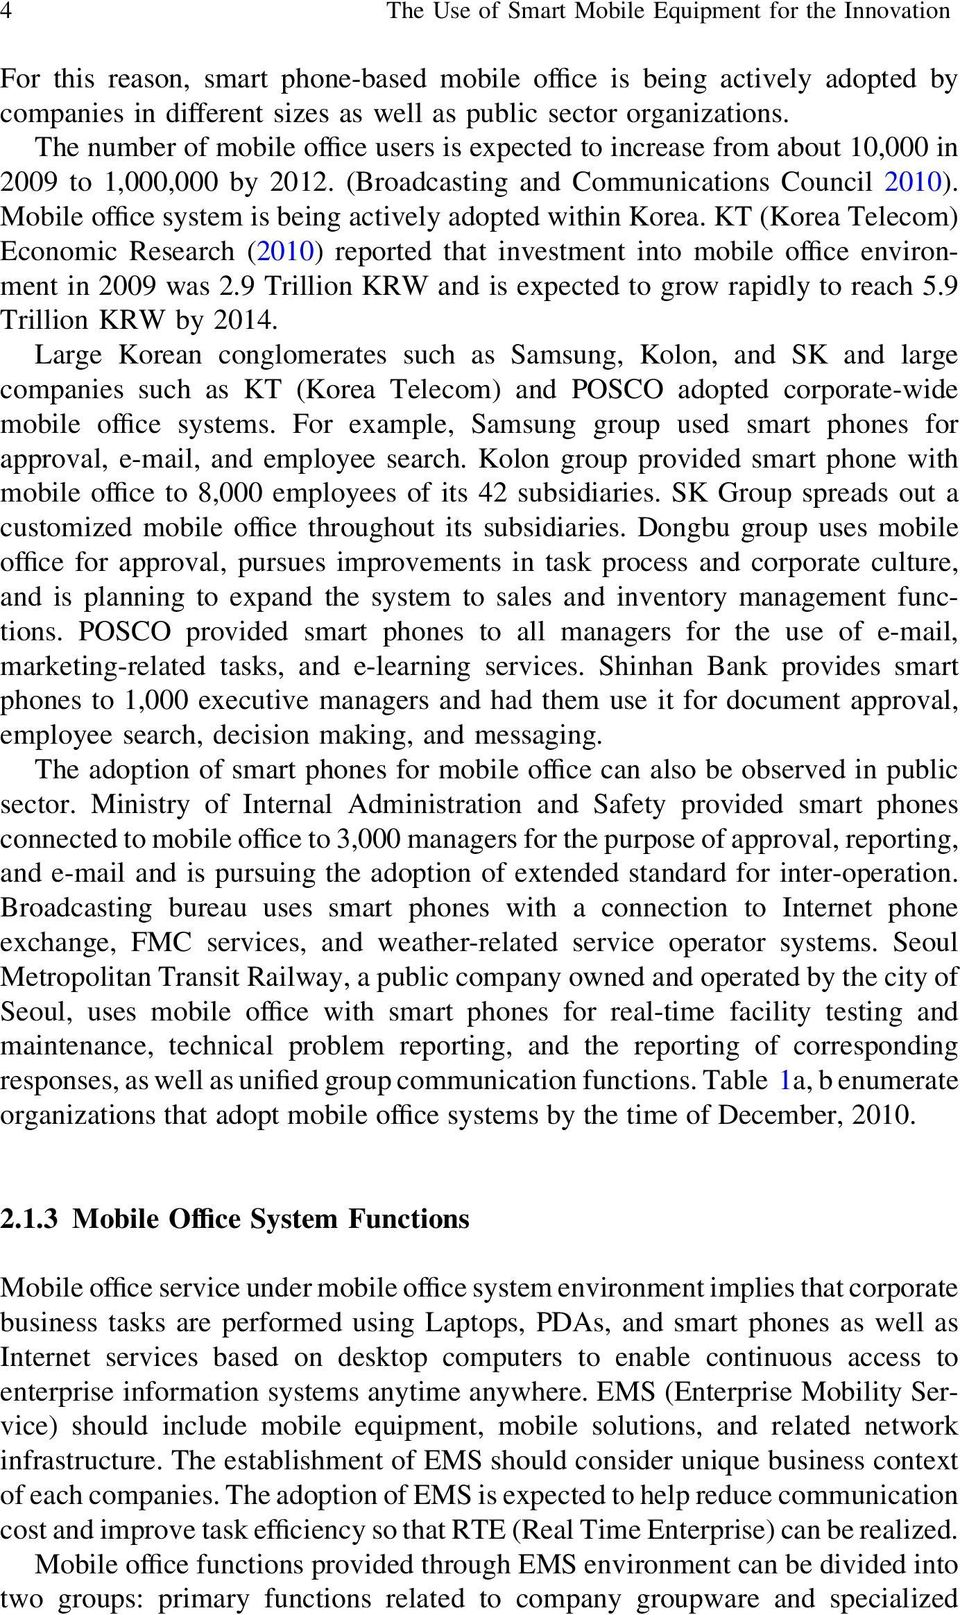 Mobile office system is being actively adopted within Korea. KT (Korea Telecom) Economic Research (2010) reported that investment into mobile office environment in 2009 was 2.